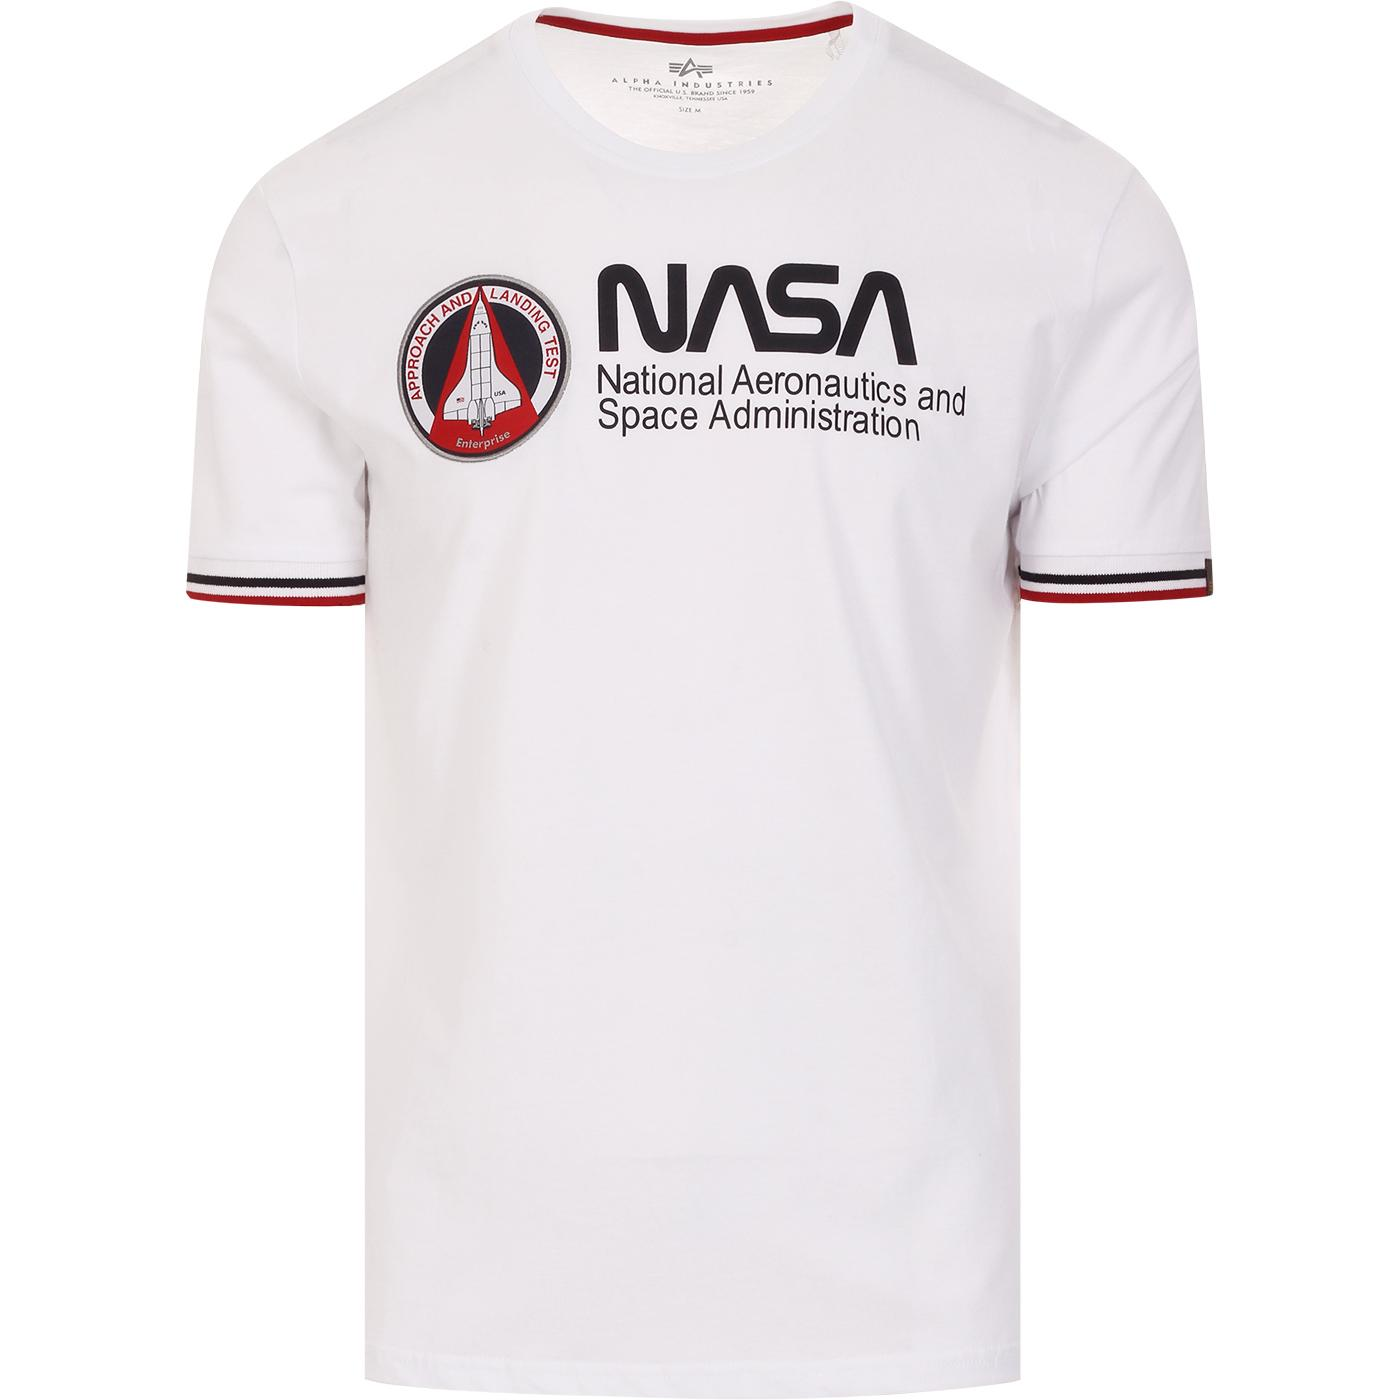 ALPHA INDUSTRIES x NASA Men's Retro Tee (White)